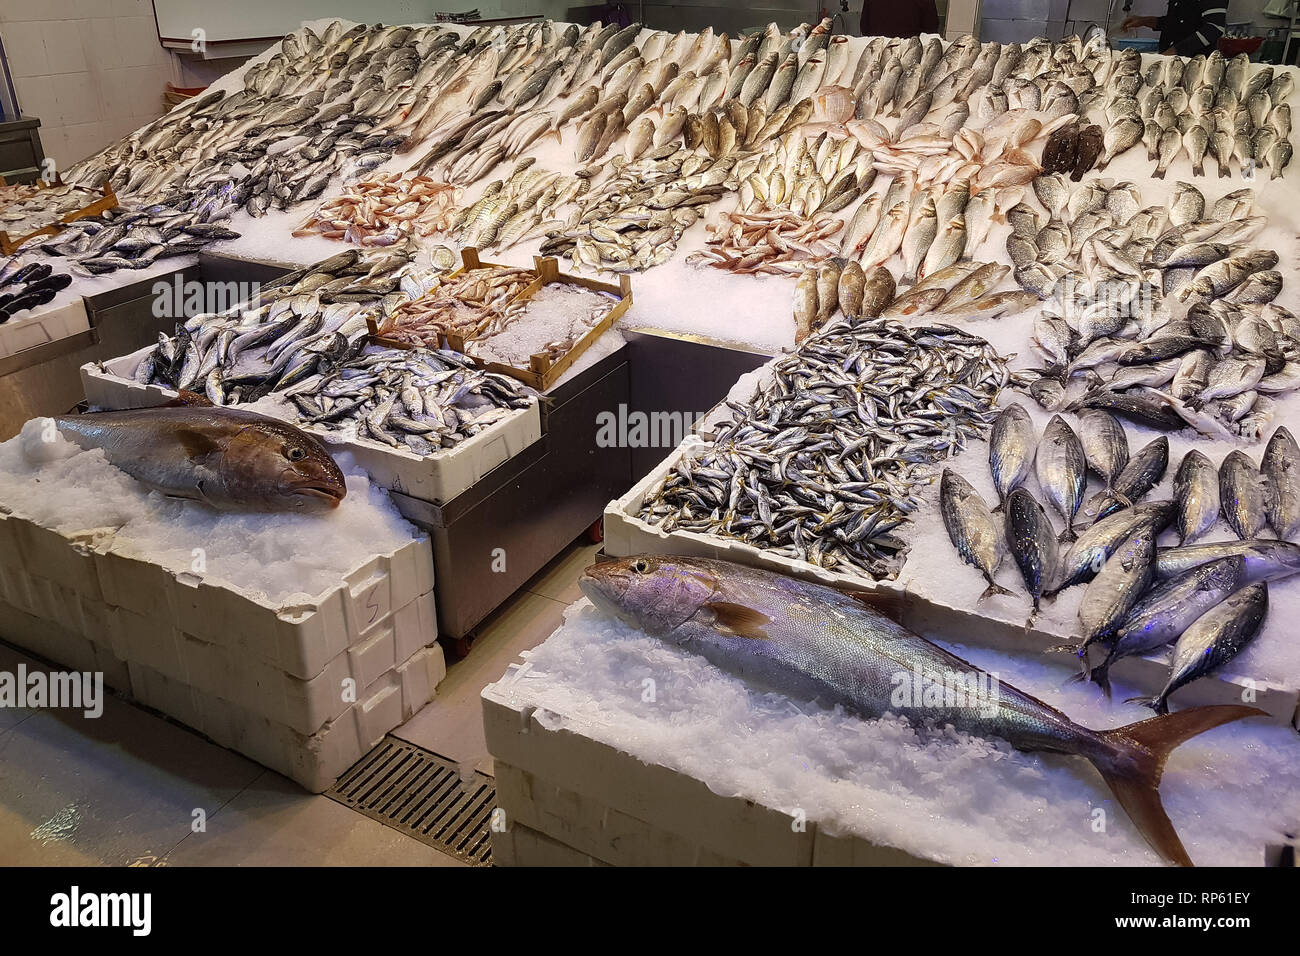 Top down view on multiple rows of various raw freshly caught fish on ice for sale. Mediterranian fish. - Stock Image